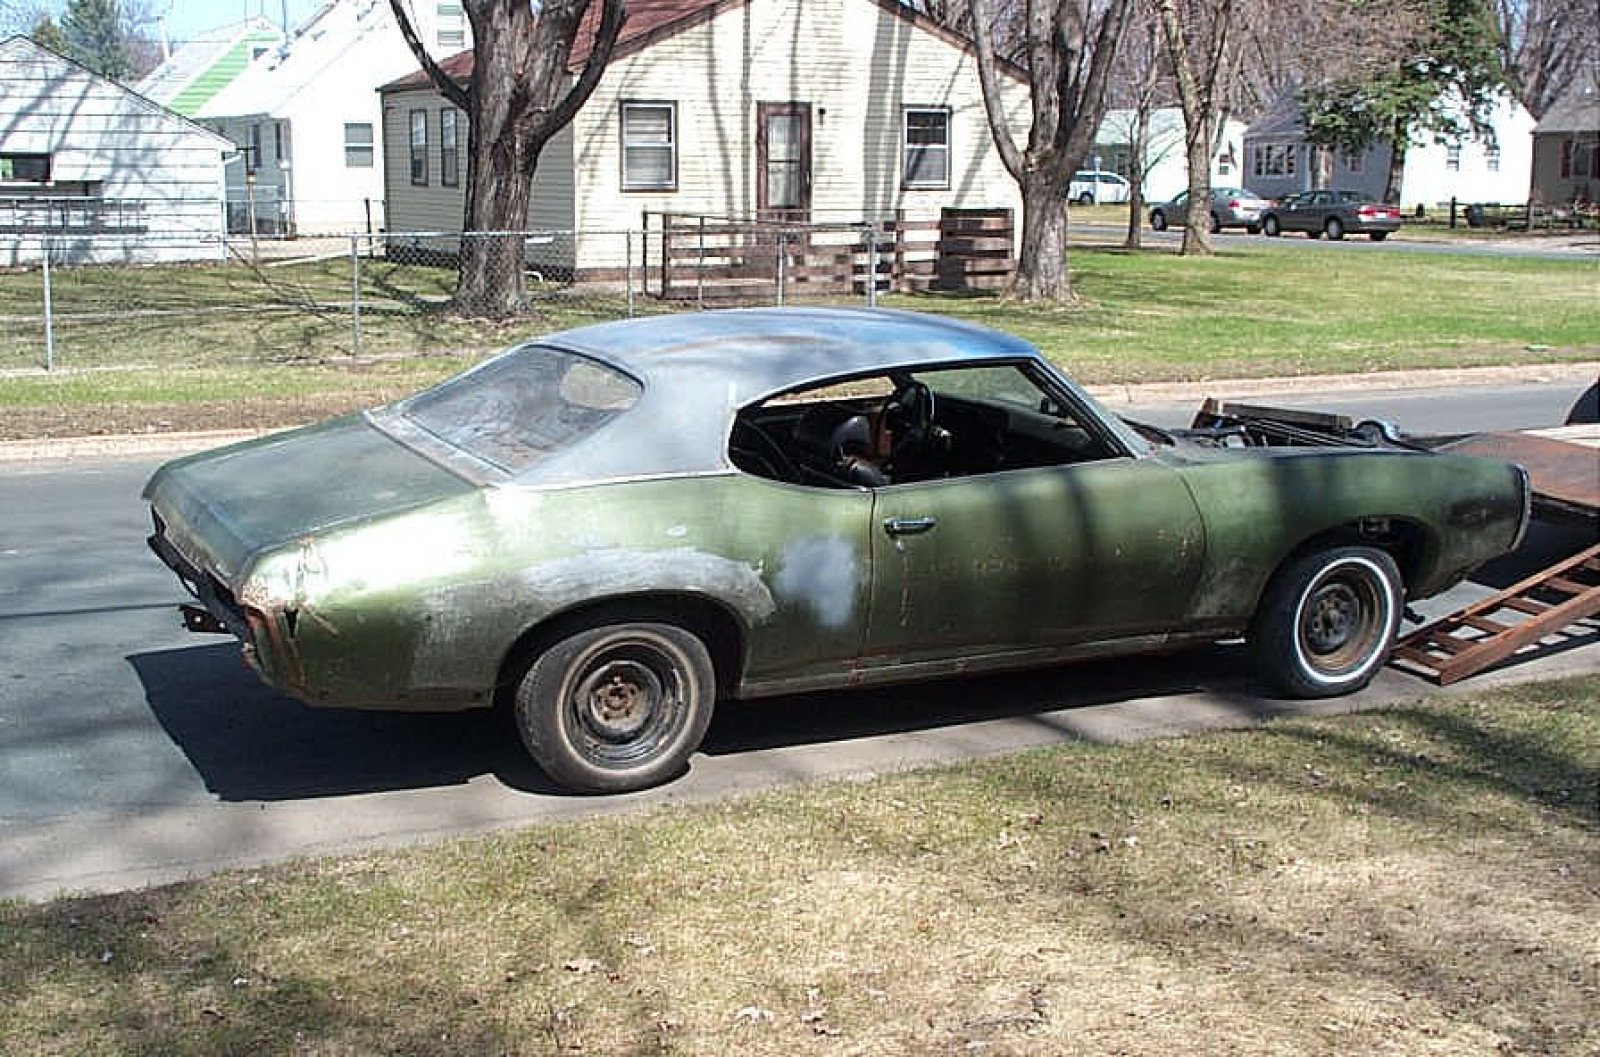 1969 Pontiac LeMans Coupe Project  23739R154354 - Image 1